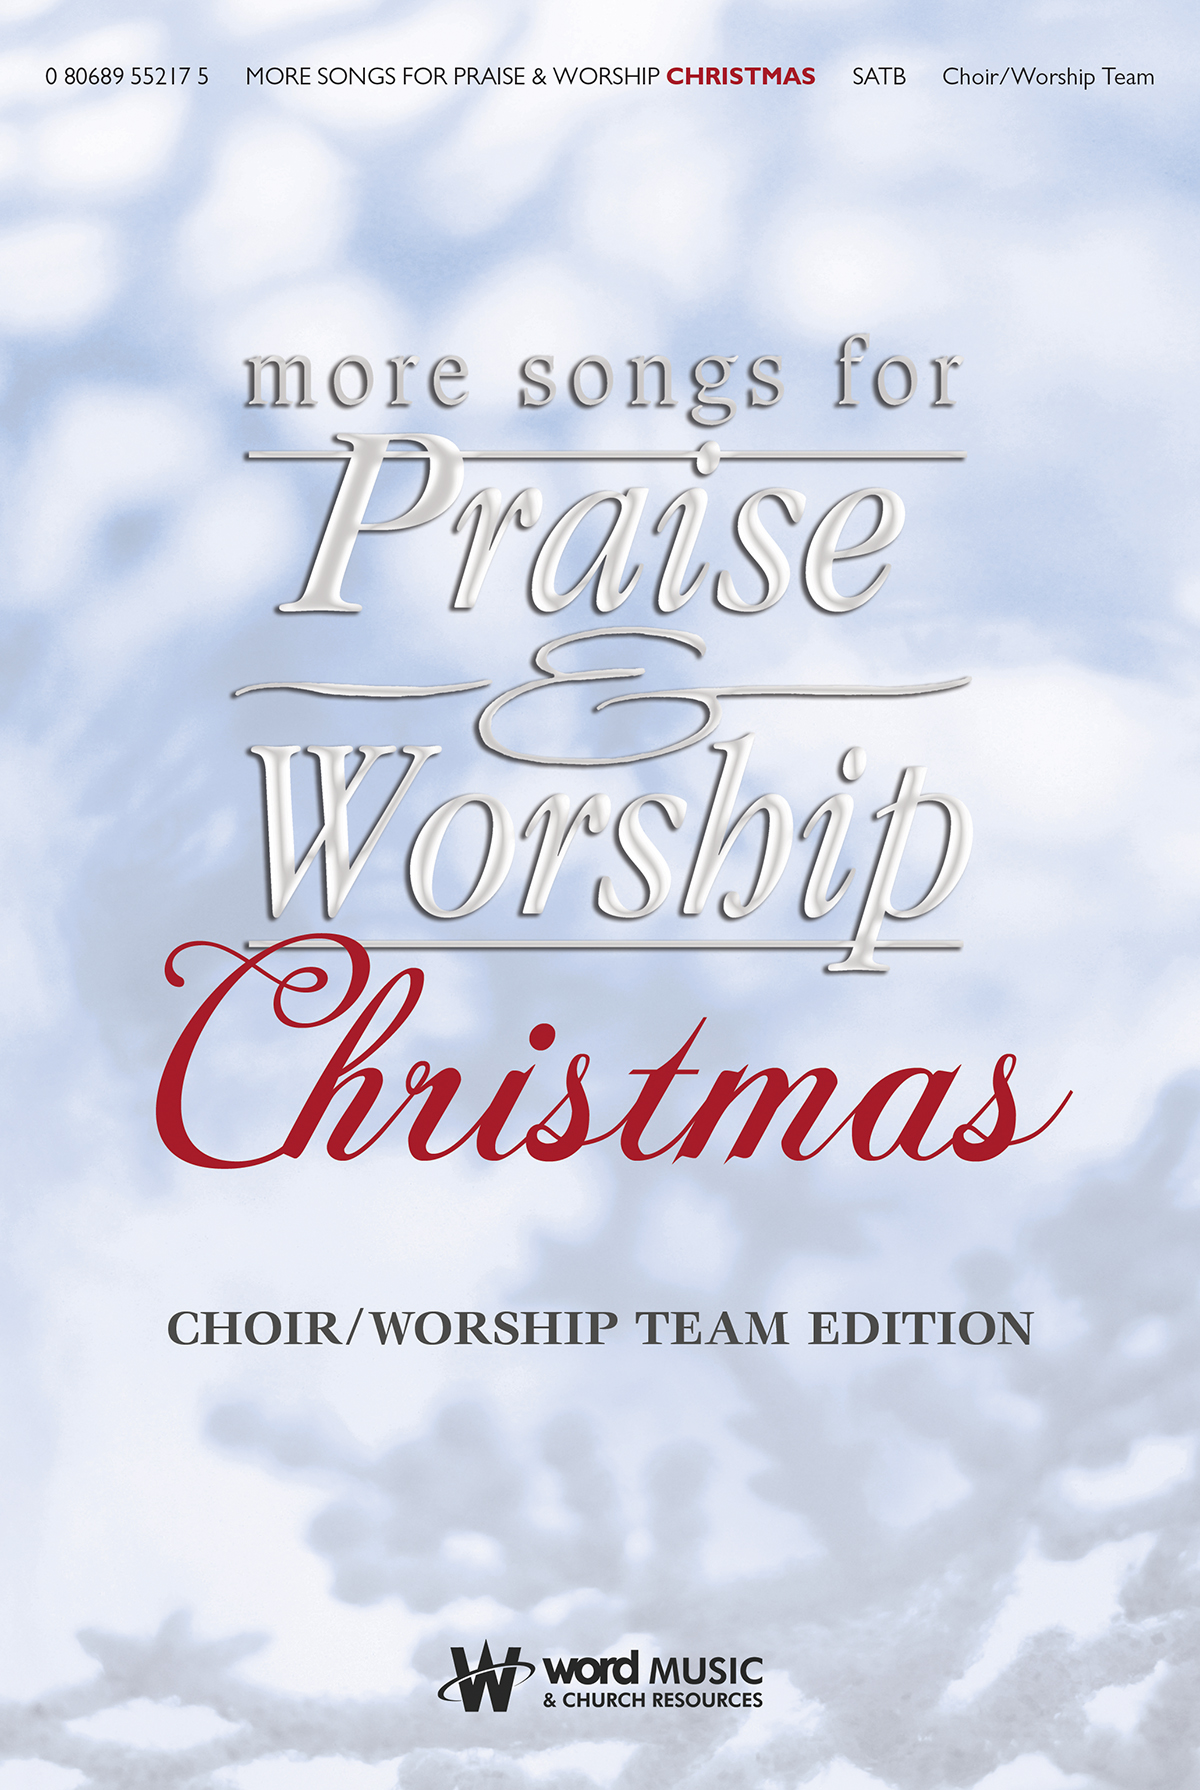 More Songs for Praise & Worship Christmas